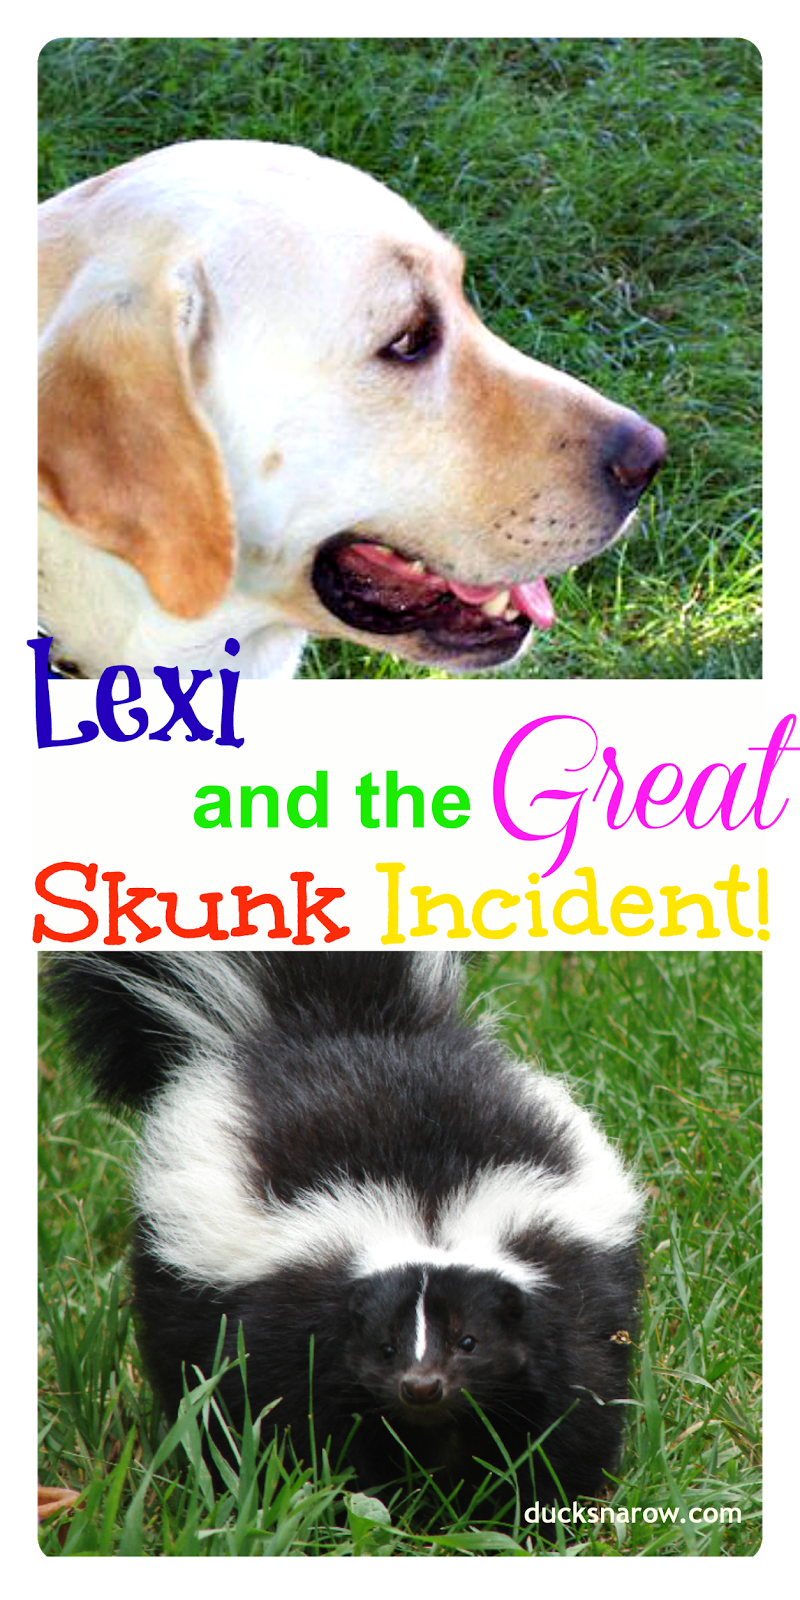 how to rid house of skunk odor